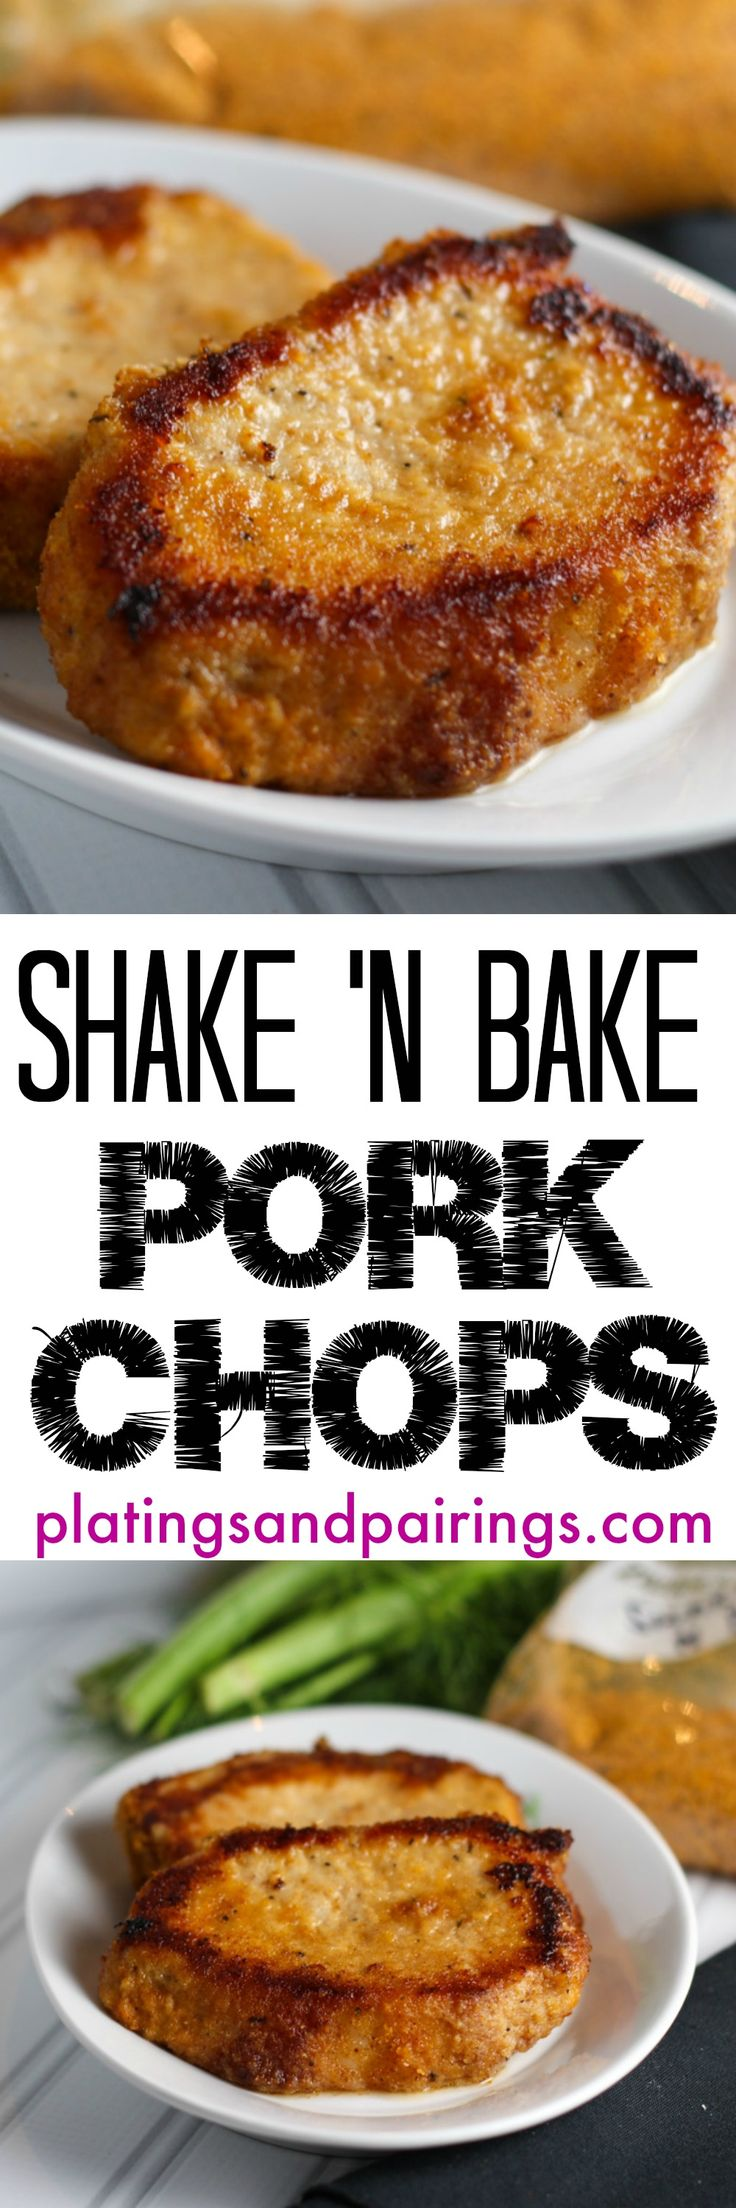 Shake N Bake Pork Chops